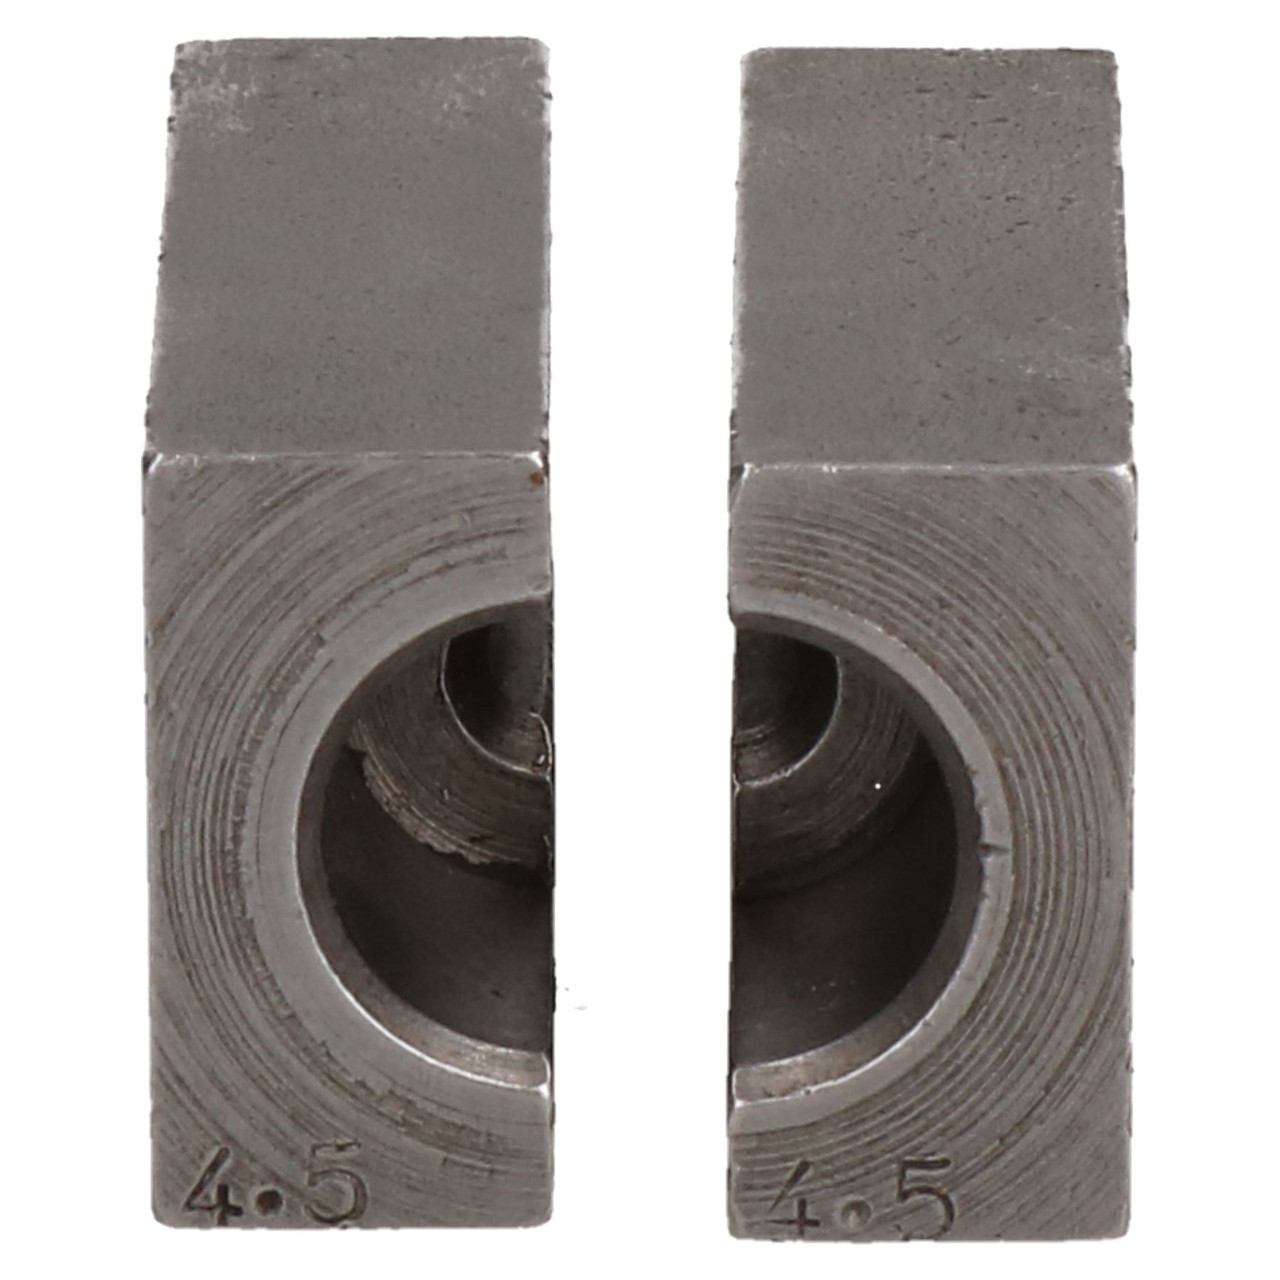 4.5mm Citroen Brake Pipe Flaring Bench Flare Tool Split Die Clamp Single Double